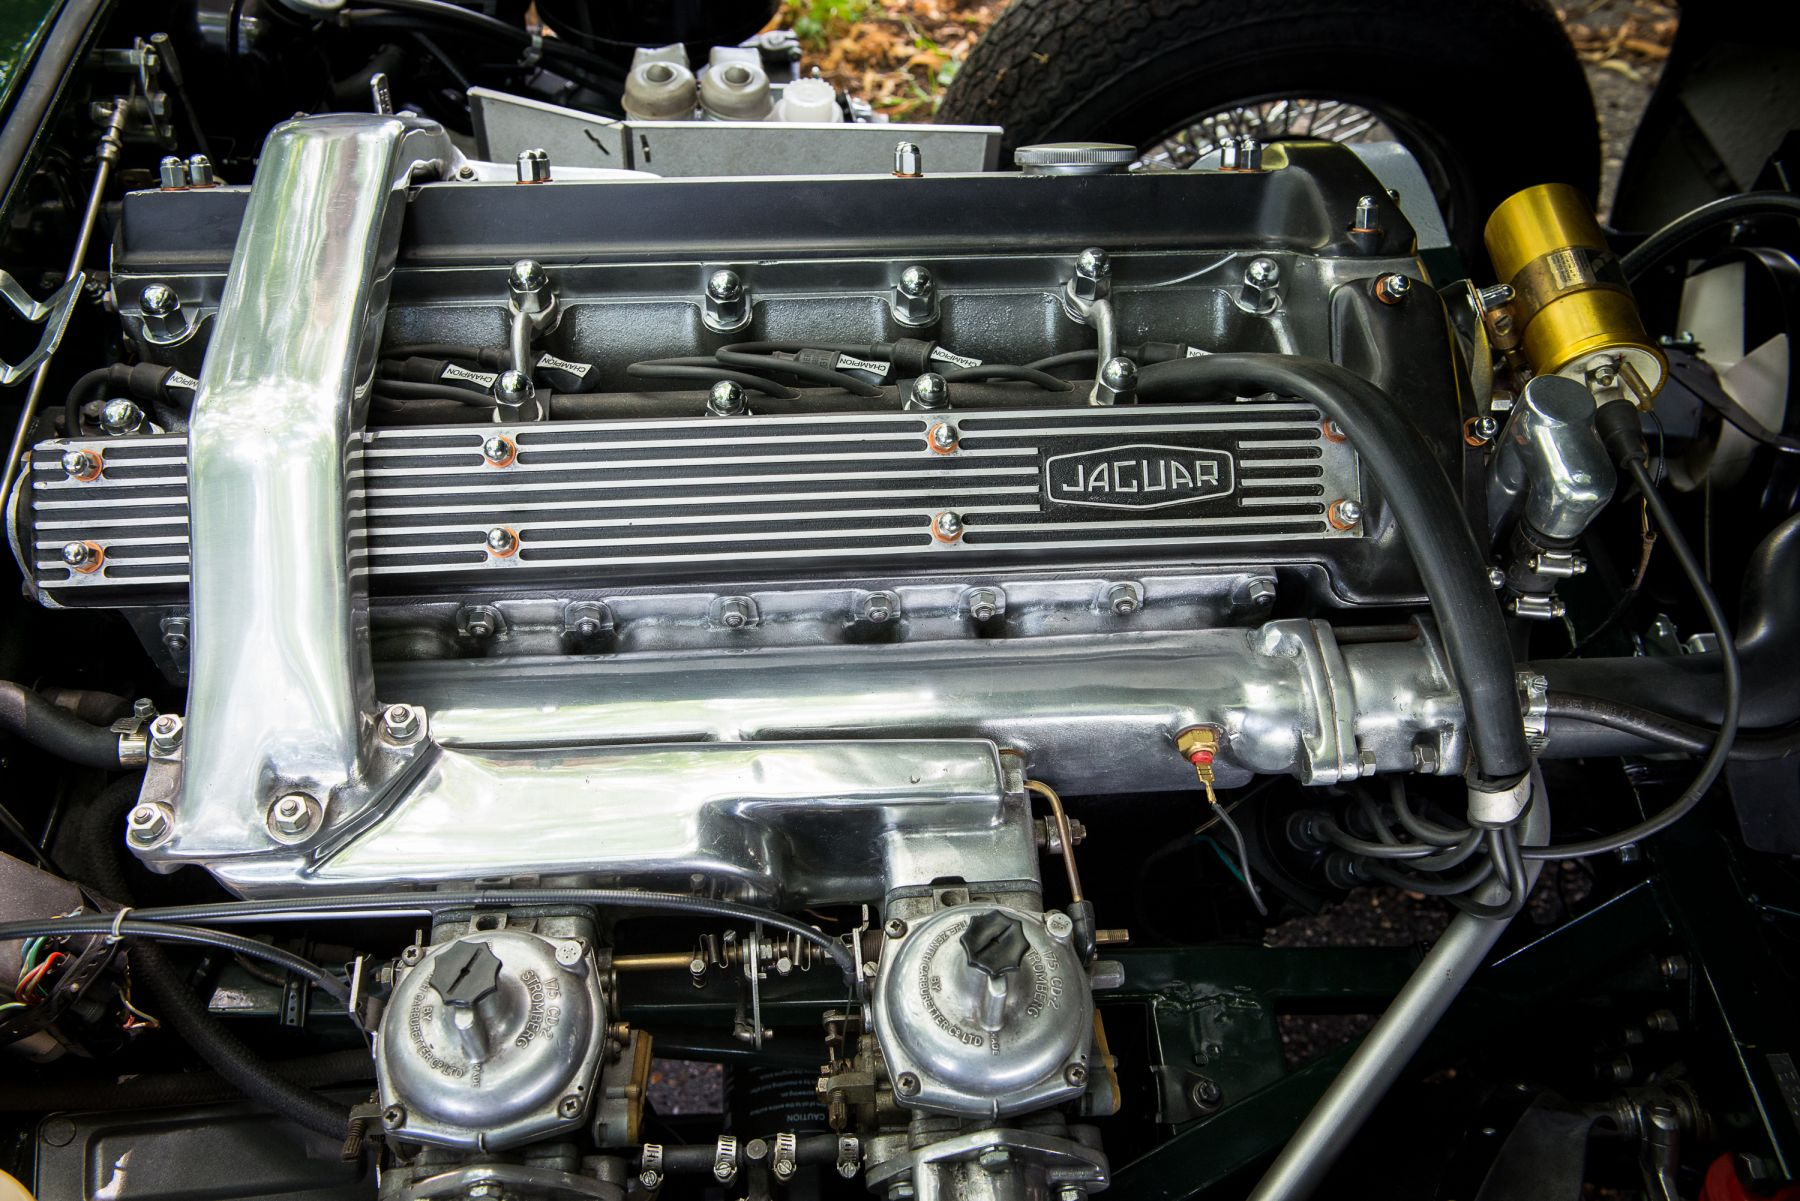 Jaguar E-type 4.2 Fixed Head Coupe 1967 engine matching numbers